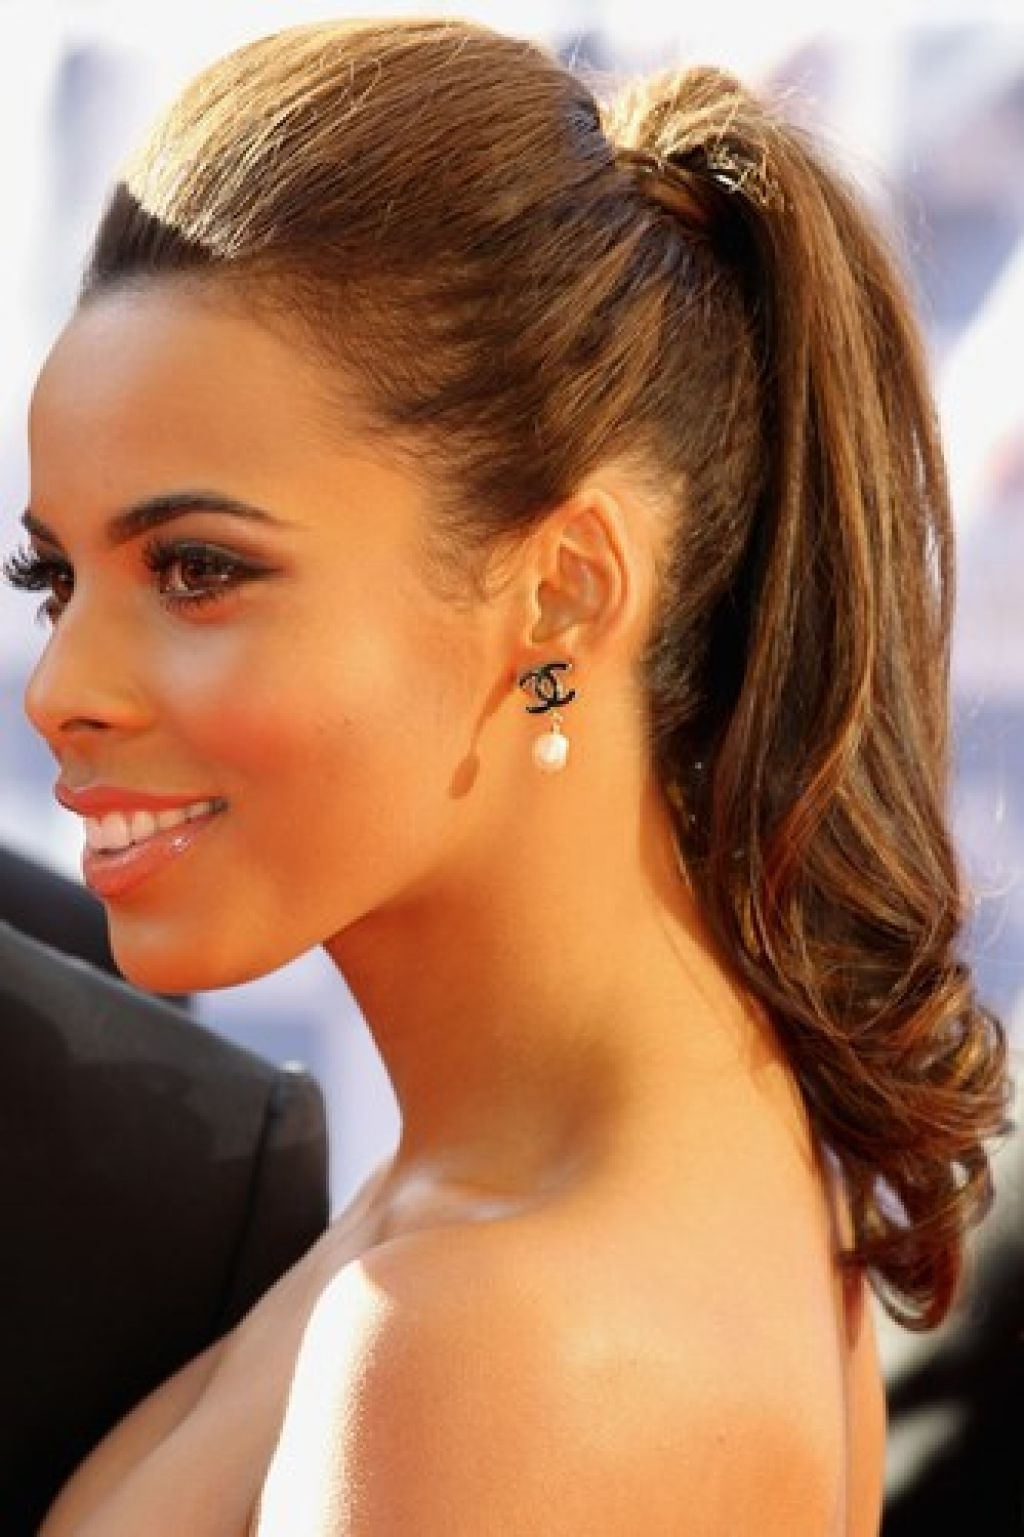 Wedding Hairstyles Ideas: Pulled Back Low Updo Wedding Guest With Most Recent Tied Up Wedding Hairstyles (View 14 of 15)